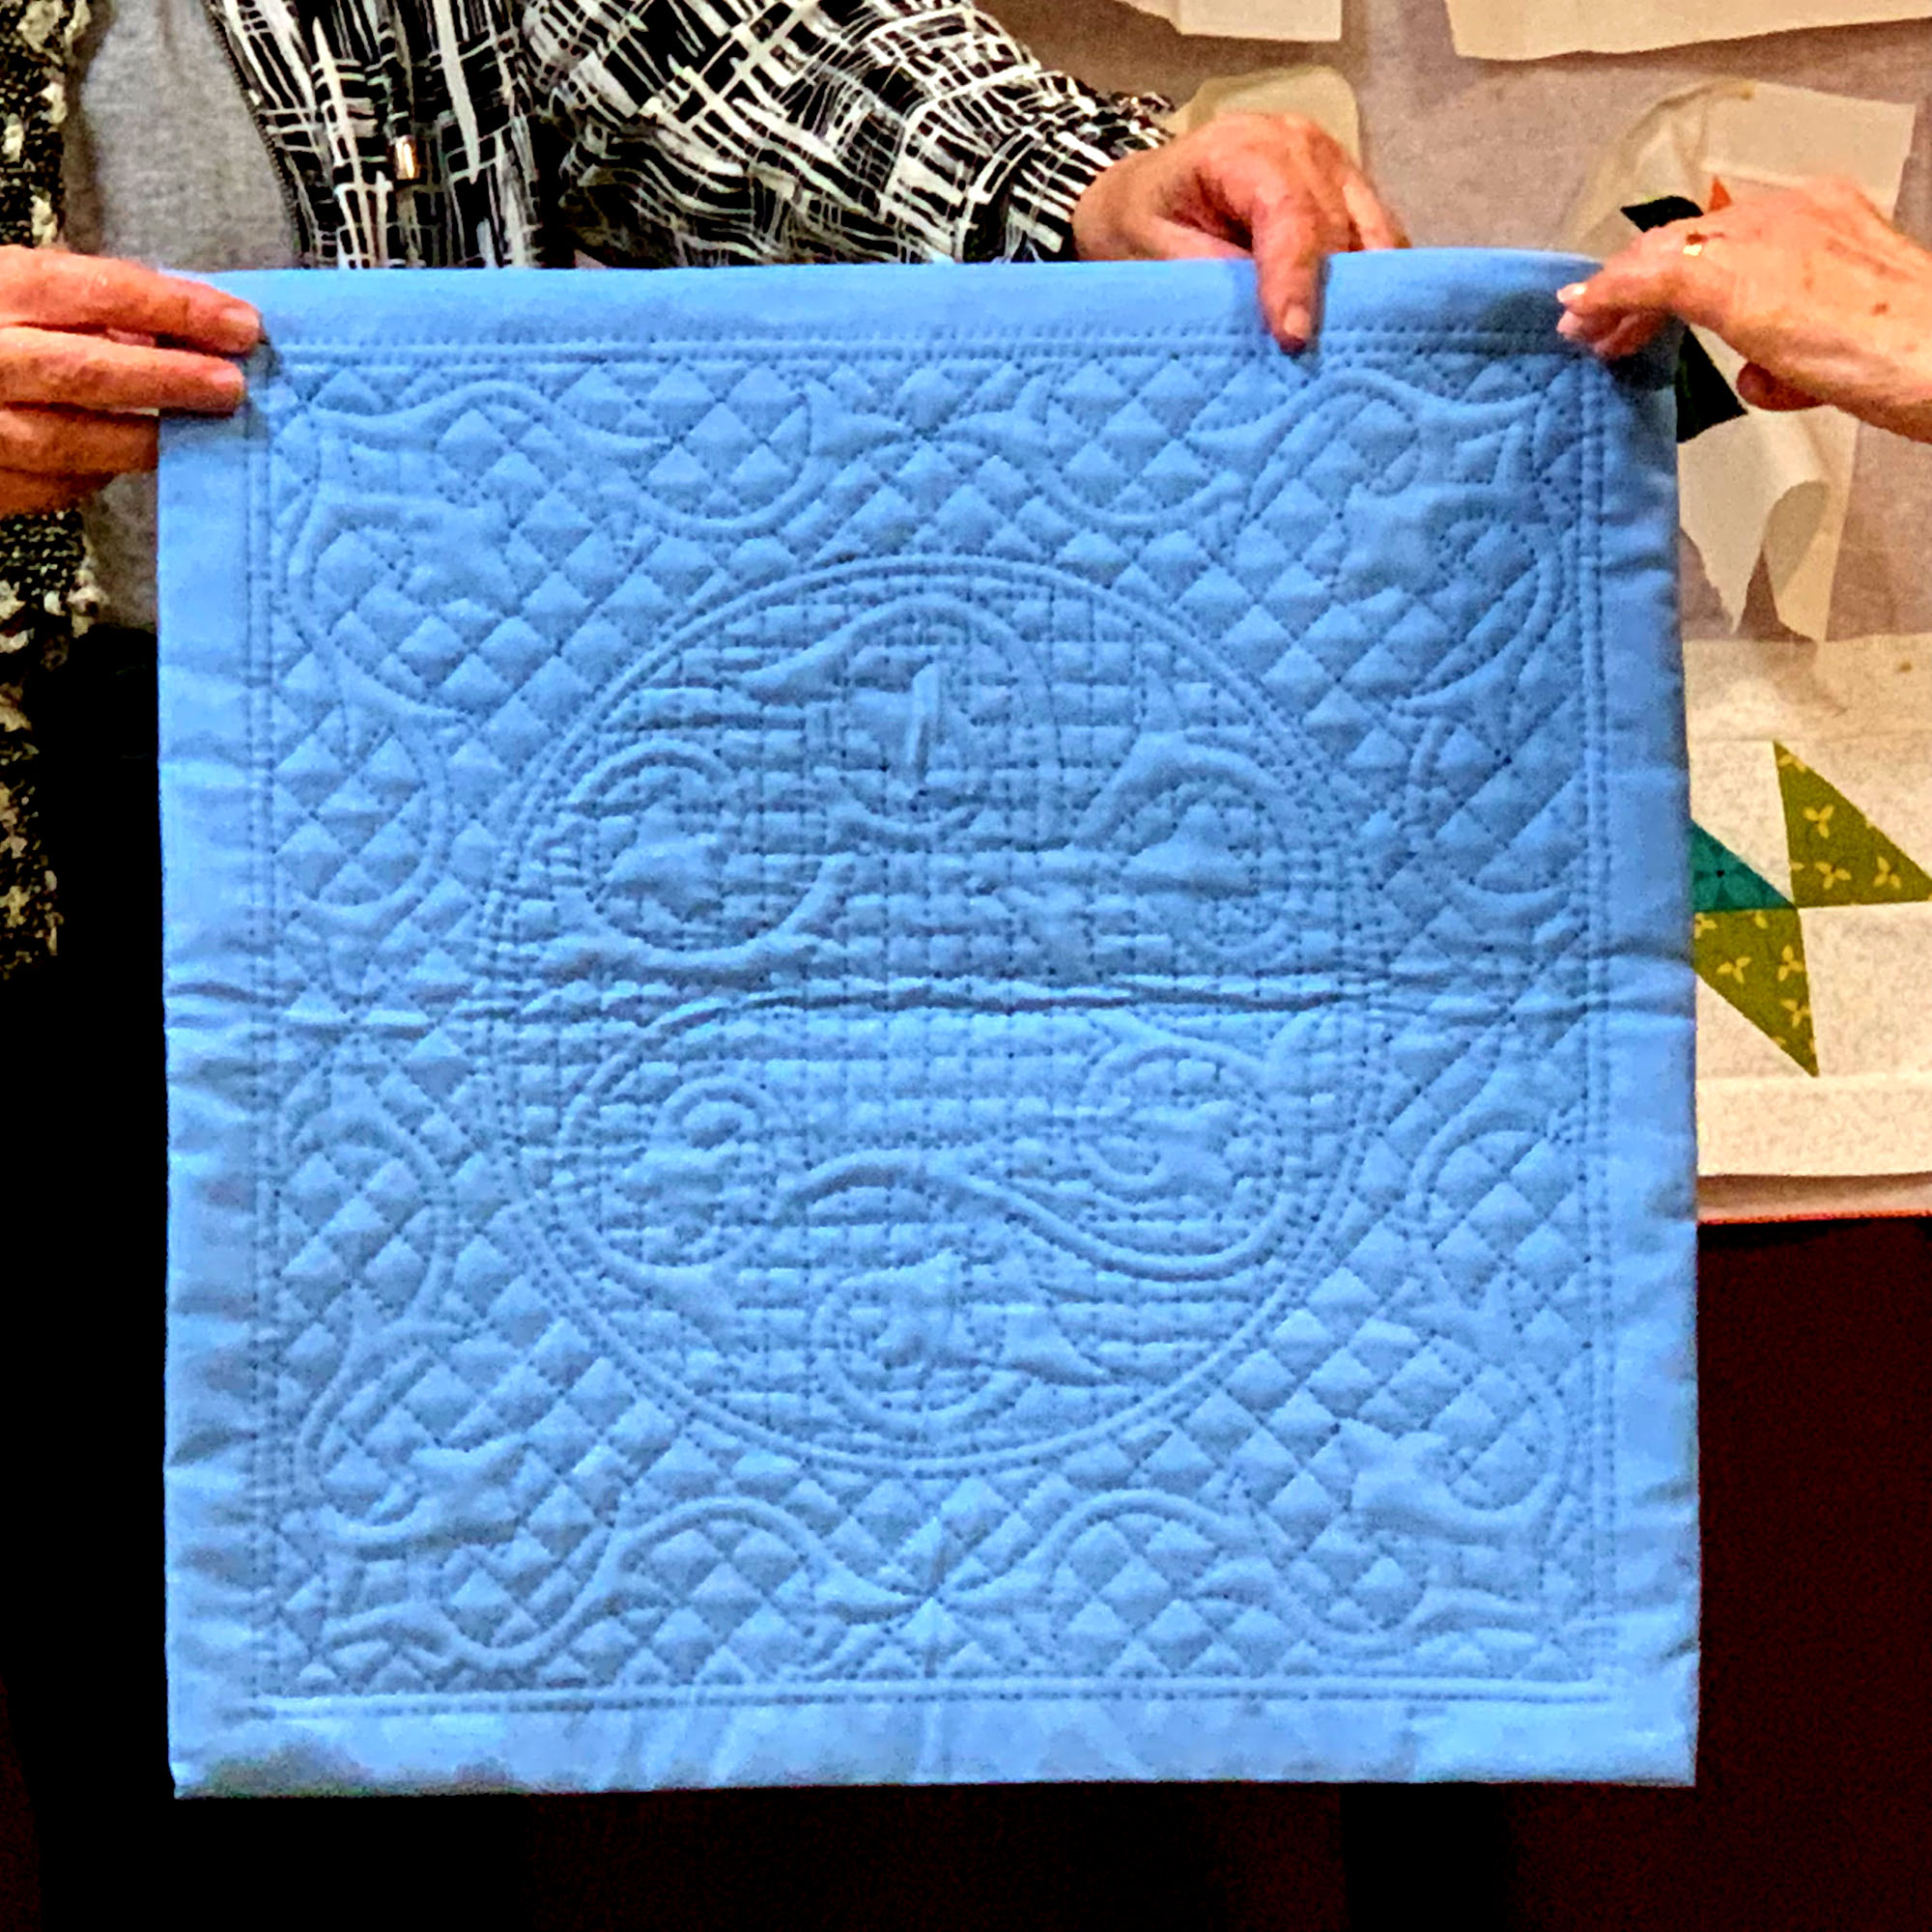 Whole cloth quilt, by Maryann Cannavale